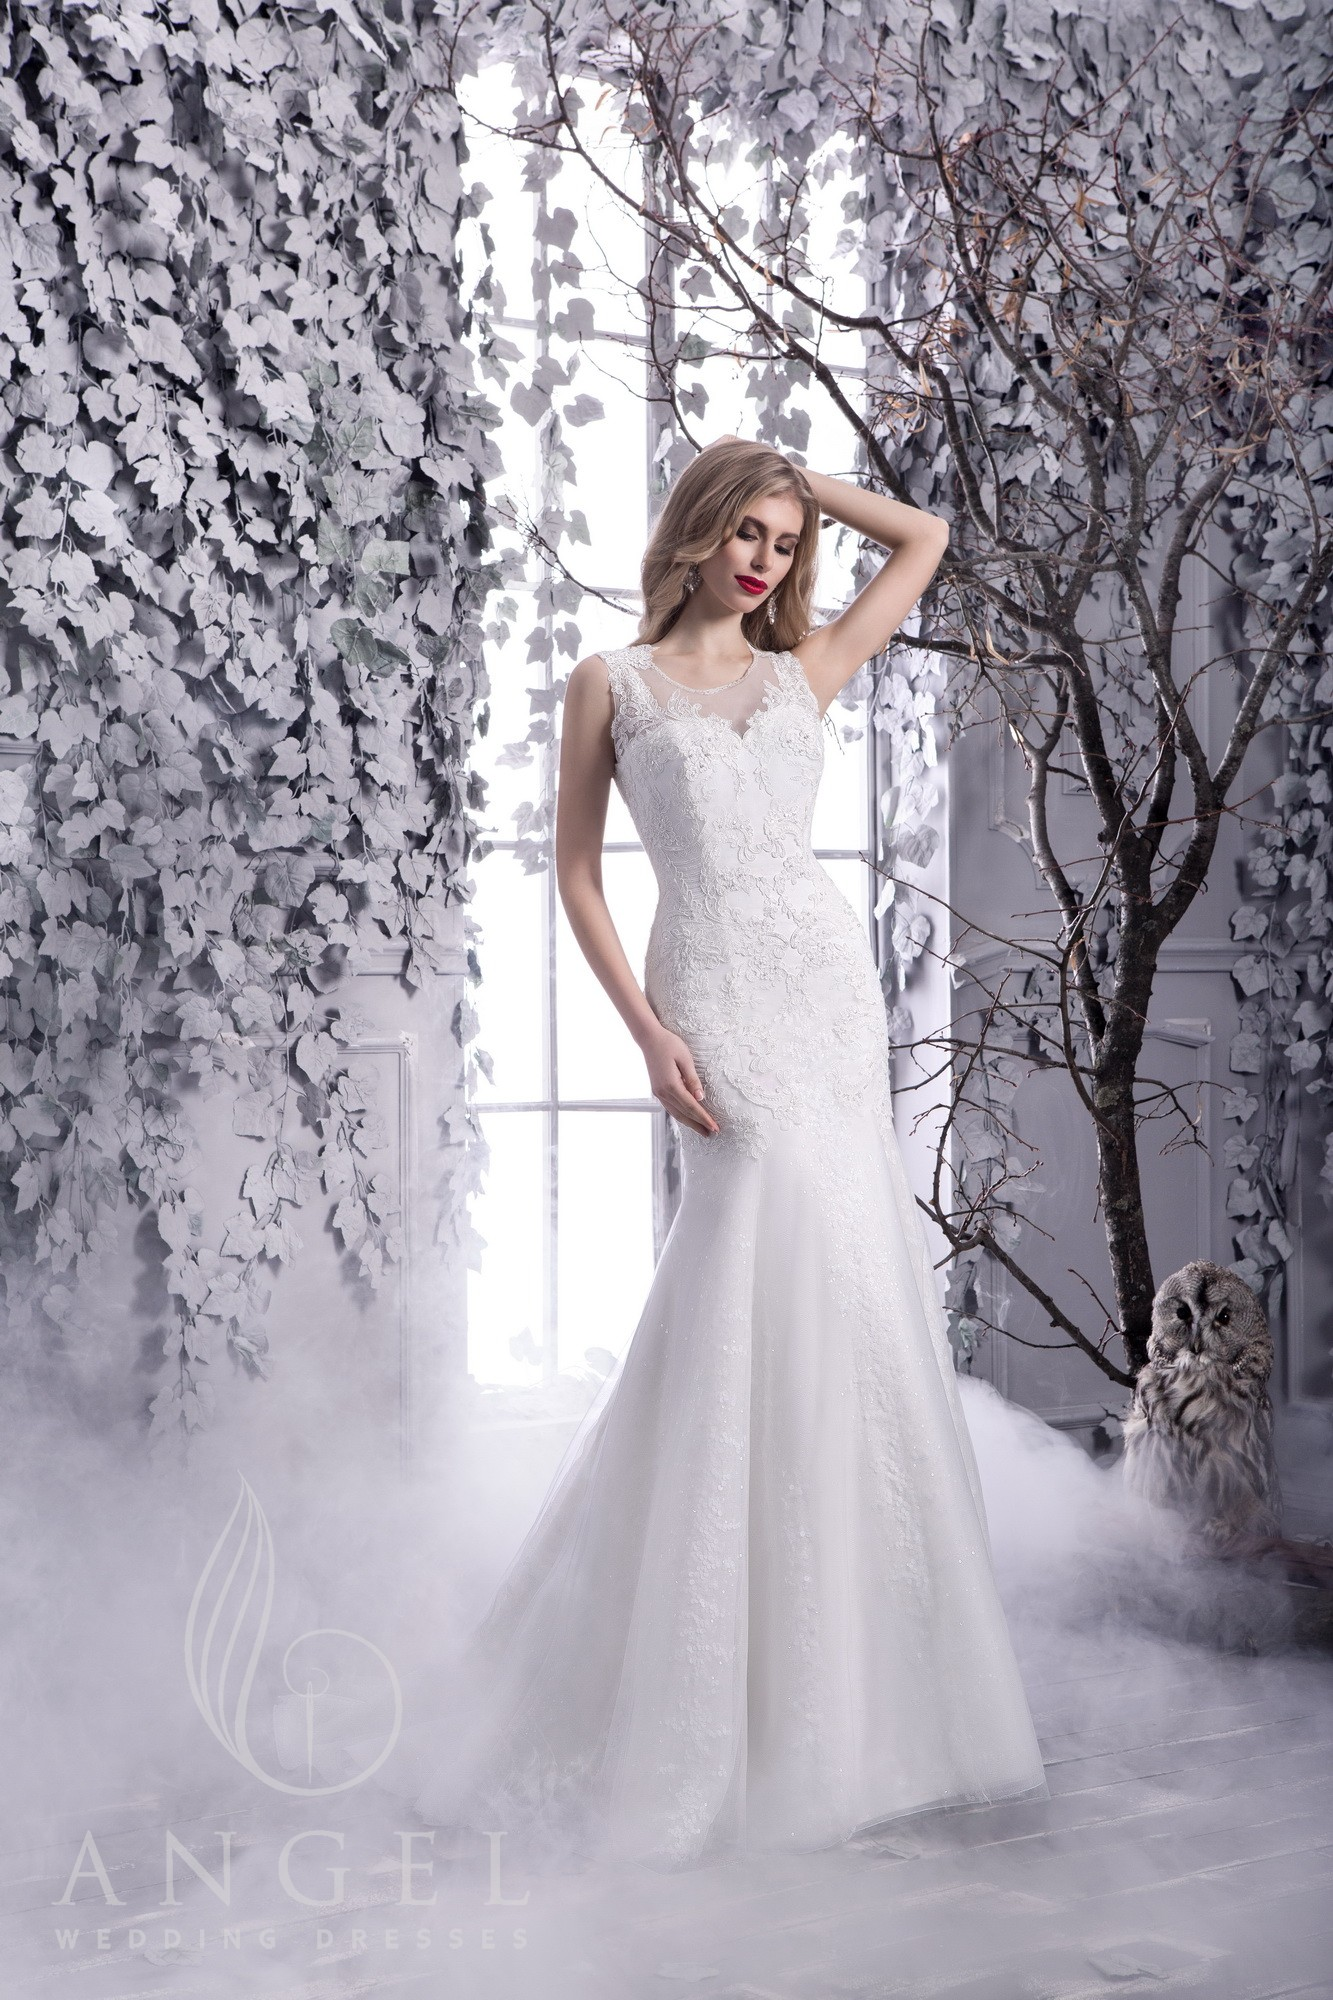 https://angel-novias.com/images/stories/virtuemart/product/HELENE.jpg